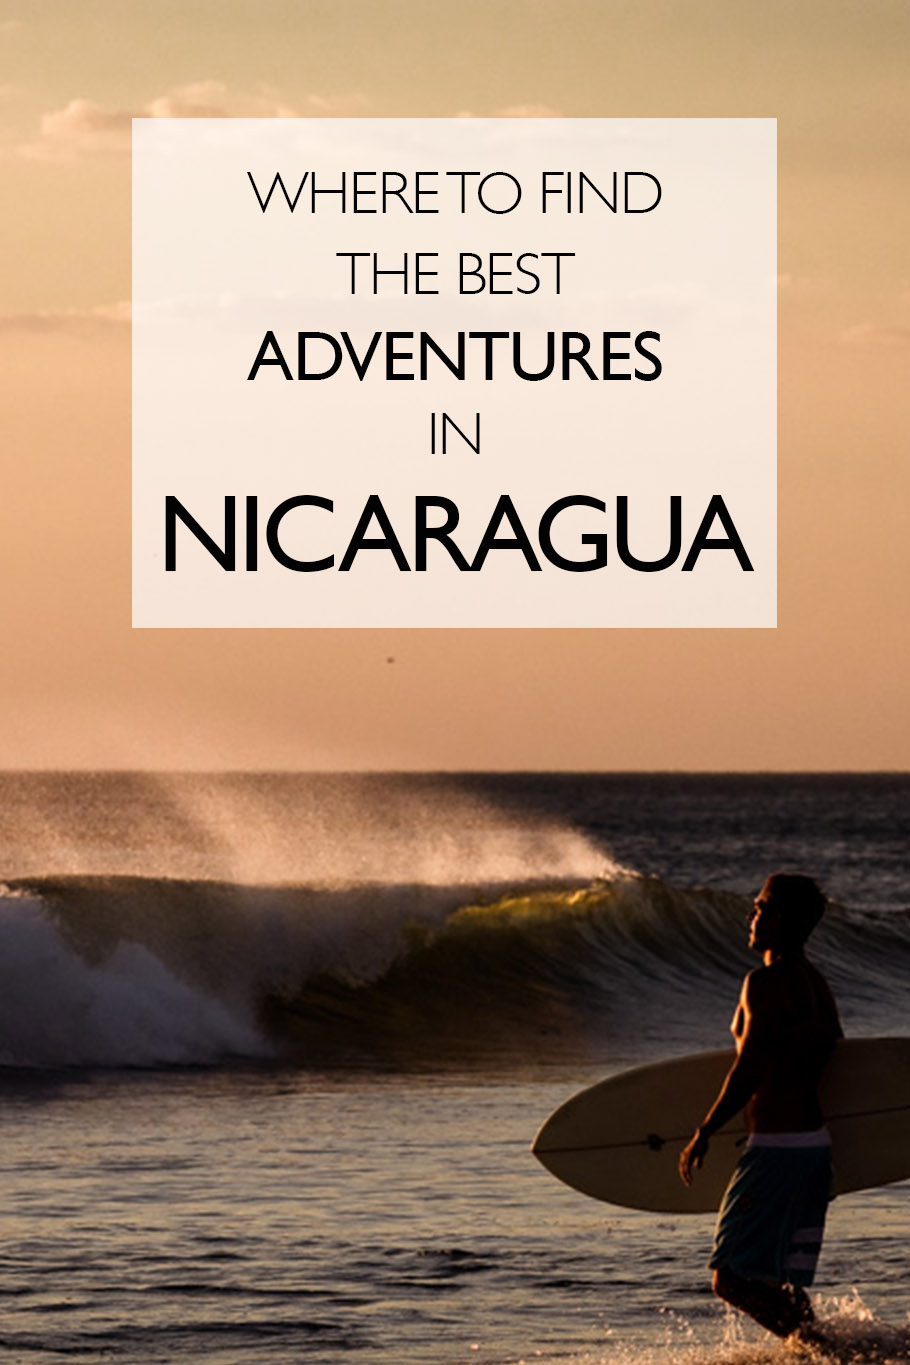 Where To Find The Best Adventures In Nicaragua